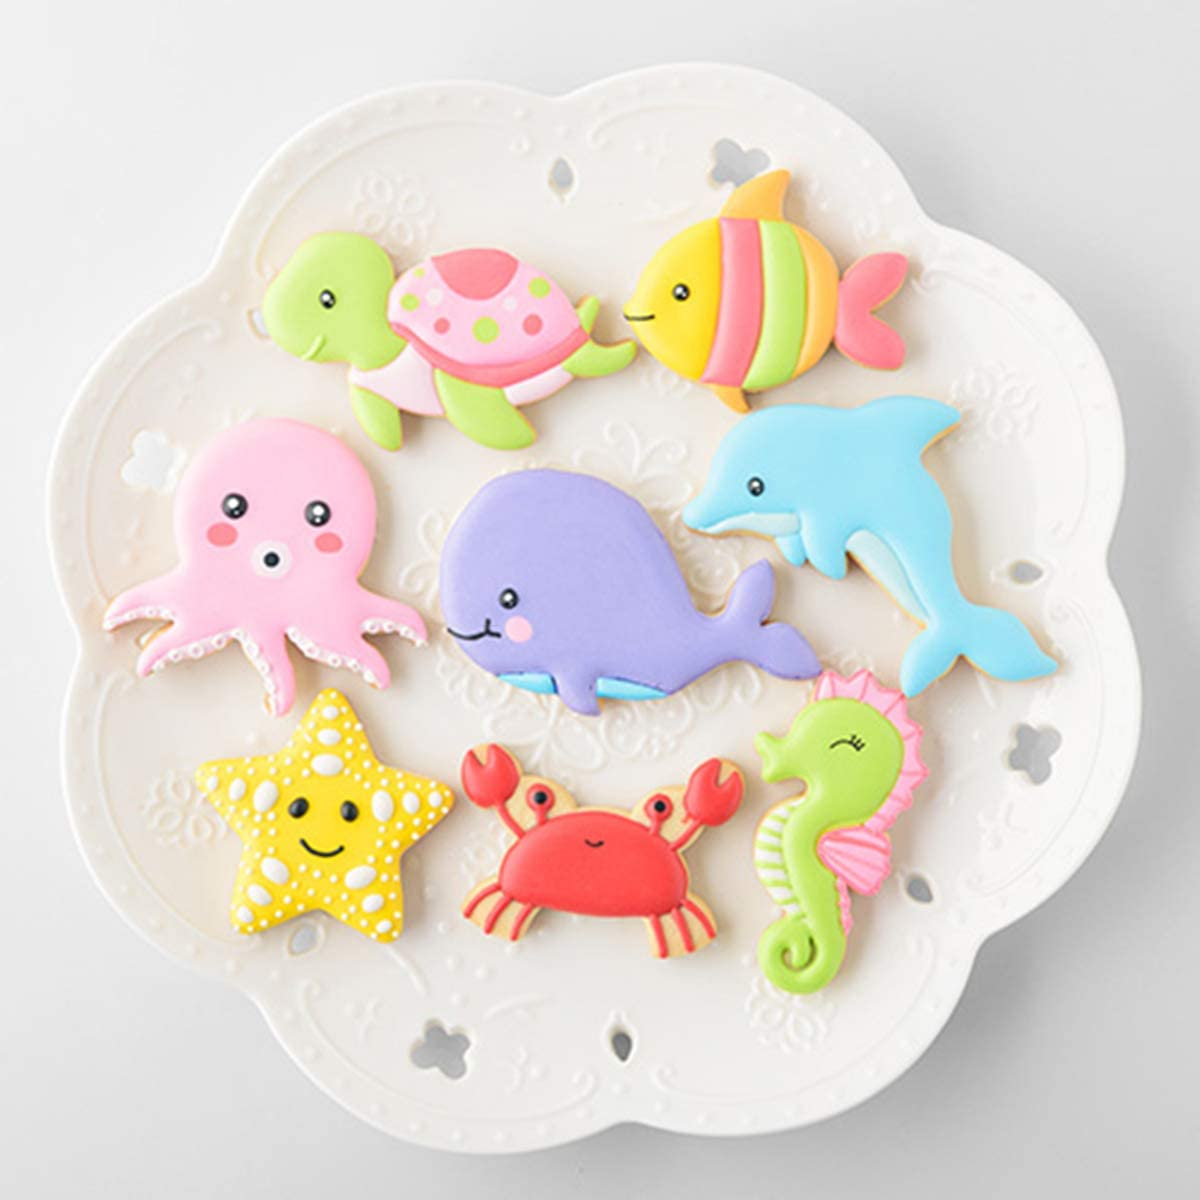 Cookie Cutters 8 Pieces Biscuit Sandwich Cutter Dolphin Whale Octopus Fish Shapes Vegetables Fruits Bread Crust Slicer Kit for Kids Bento Lunch Box